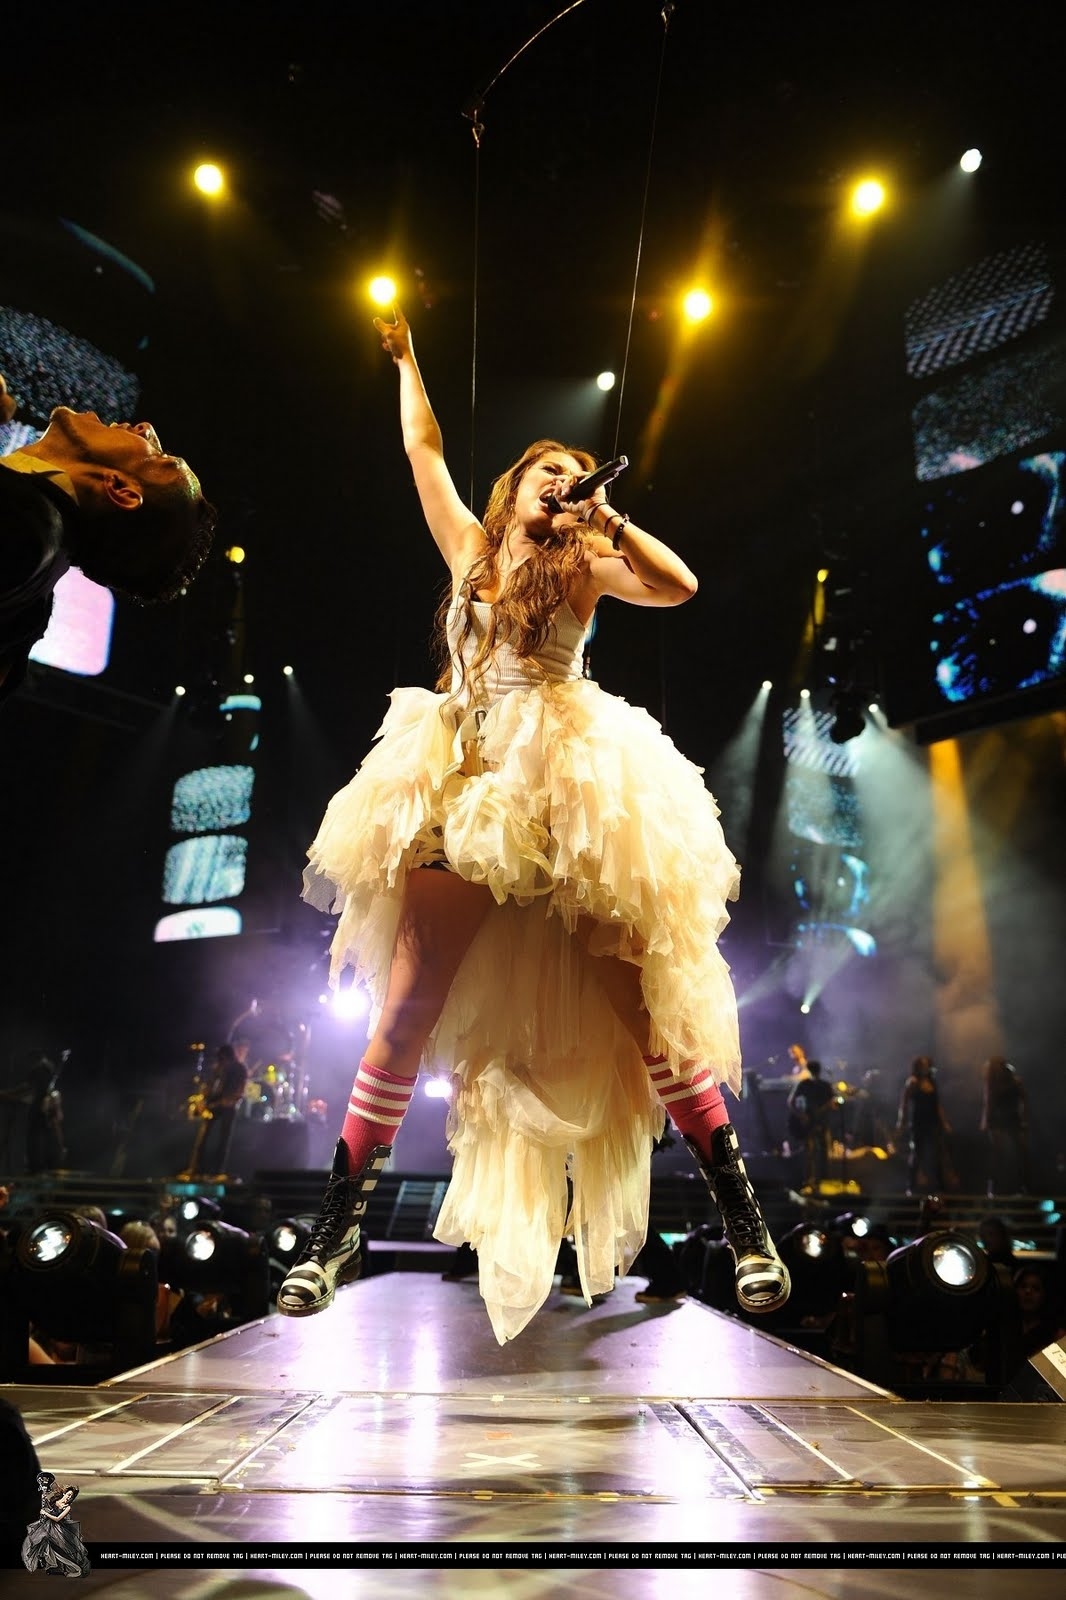 http://4.bp.blogspot.com/_vhljabVhoXM/SvDmzYnsnAI/AAAAAAAAFsI/t0b5R06aIRo/s00-r/32967_Miley_Cyrus_performs_during_her_Wonder_World_tour_at_Staples_Center_in_Los_Angeles_-_September_229_2009_008_122_419lo.jpg